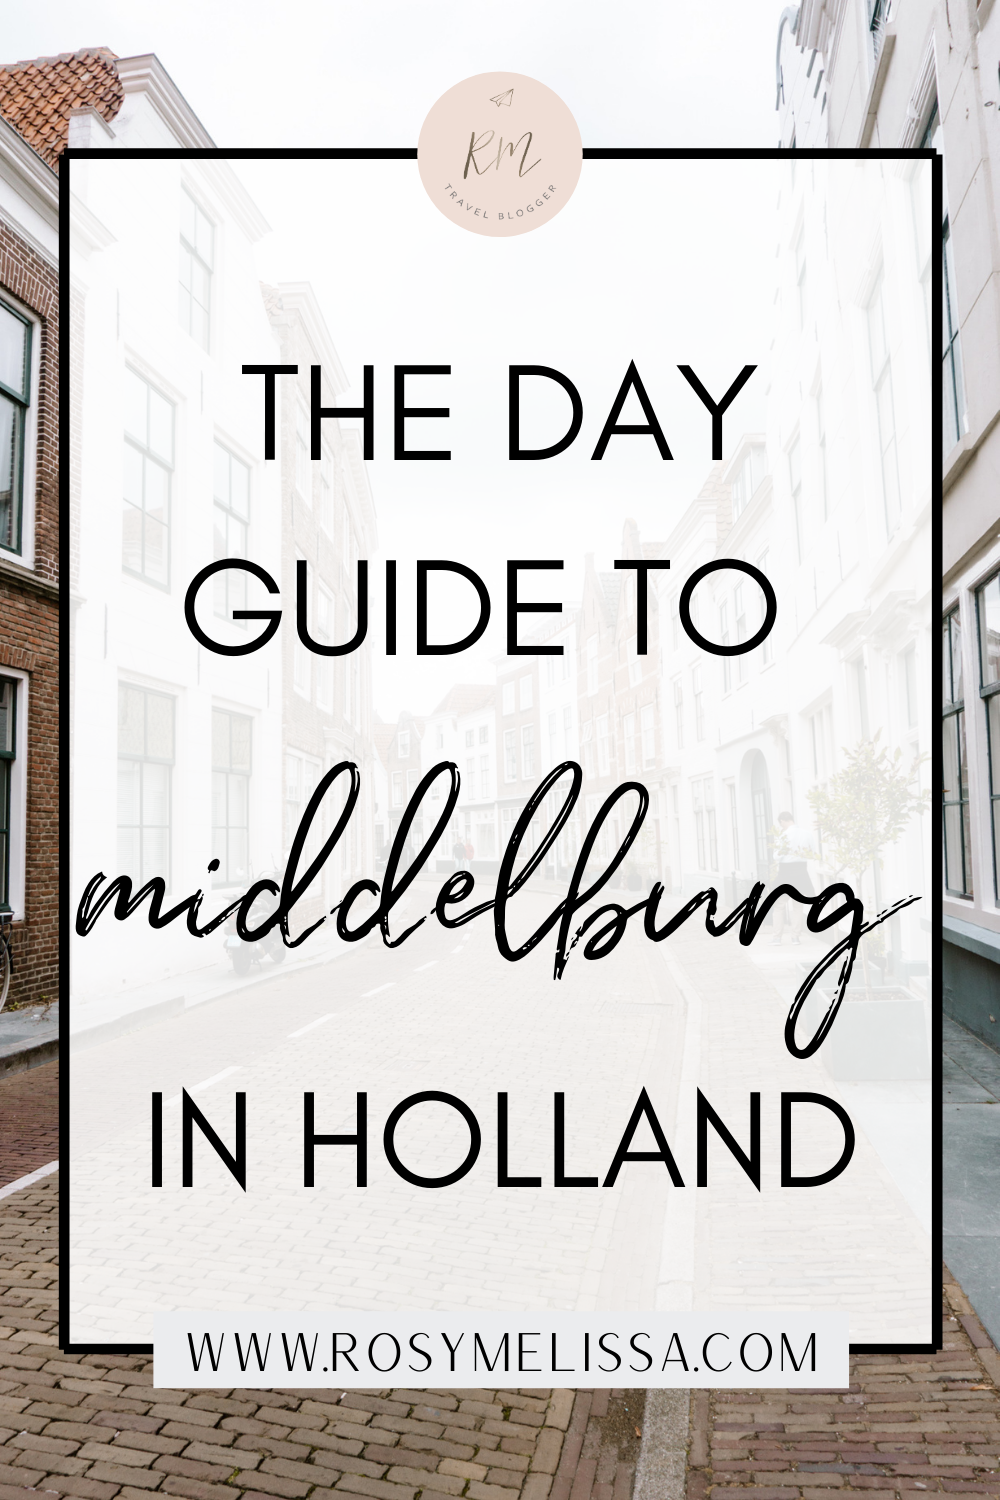 day guide to middelburg in the netherlands, dutch city guide, city trip in the netherlands, day trip from amsterdam